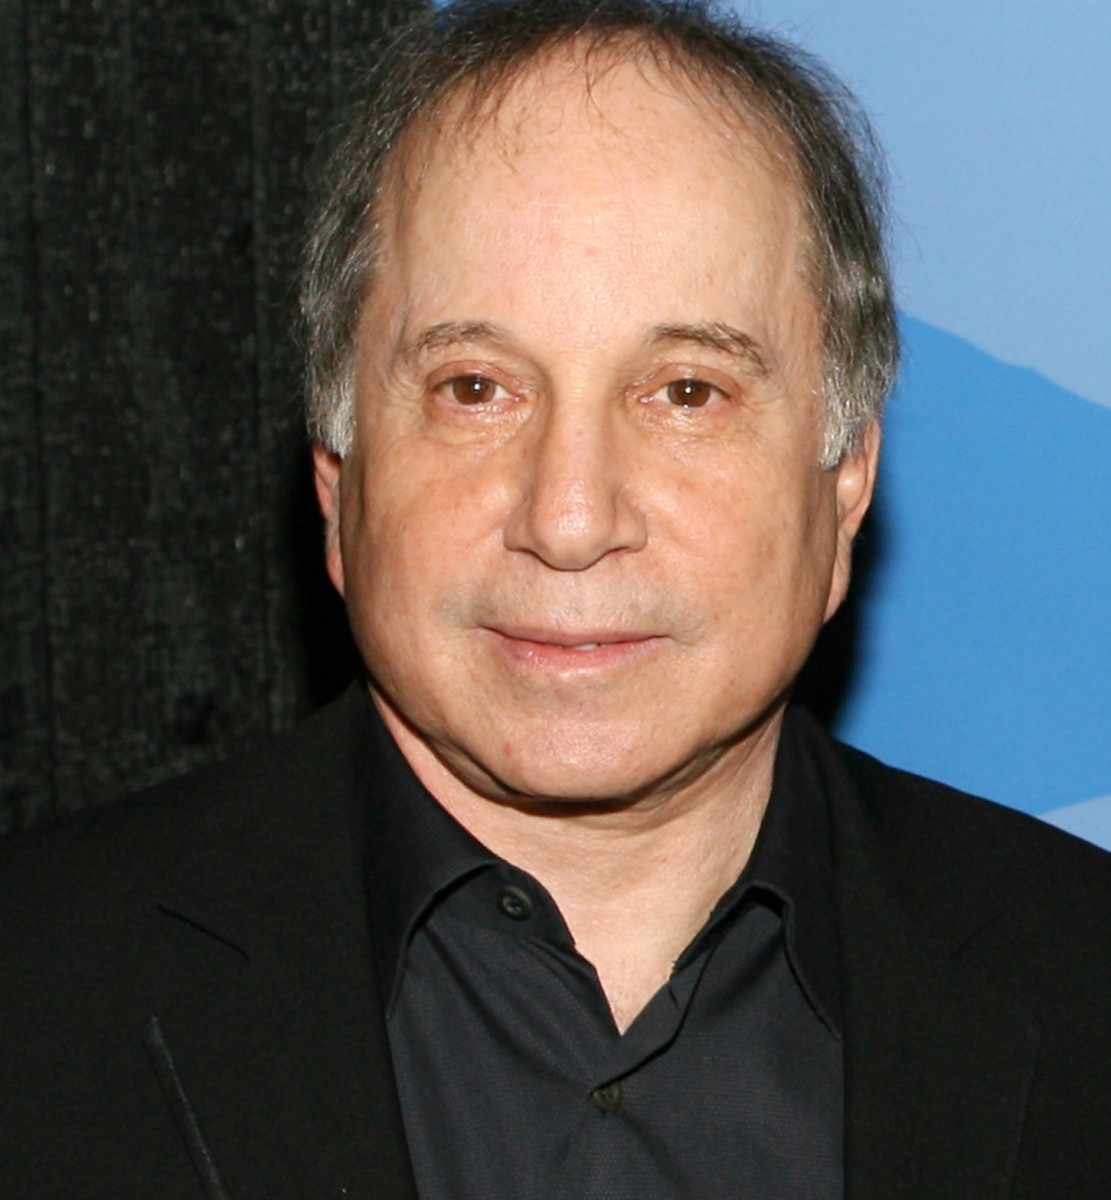 Image result for paul simon today